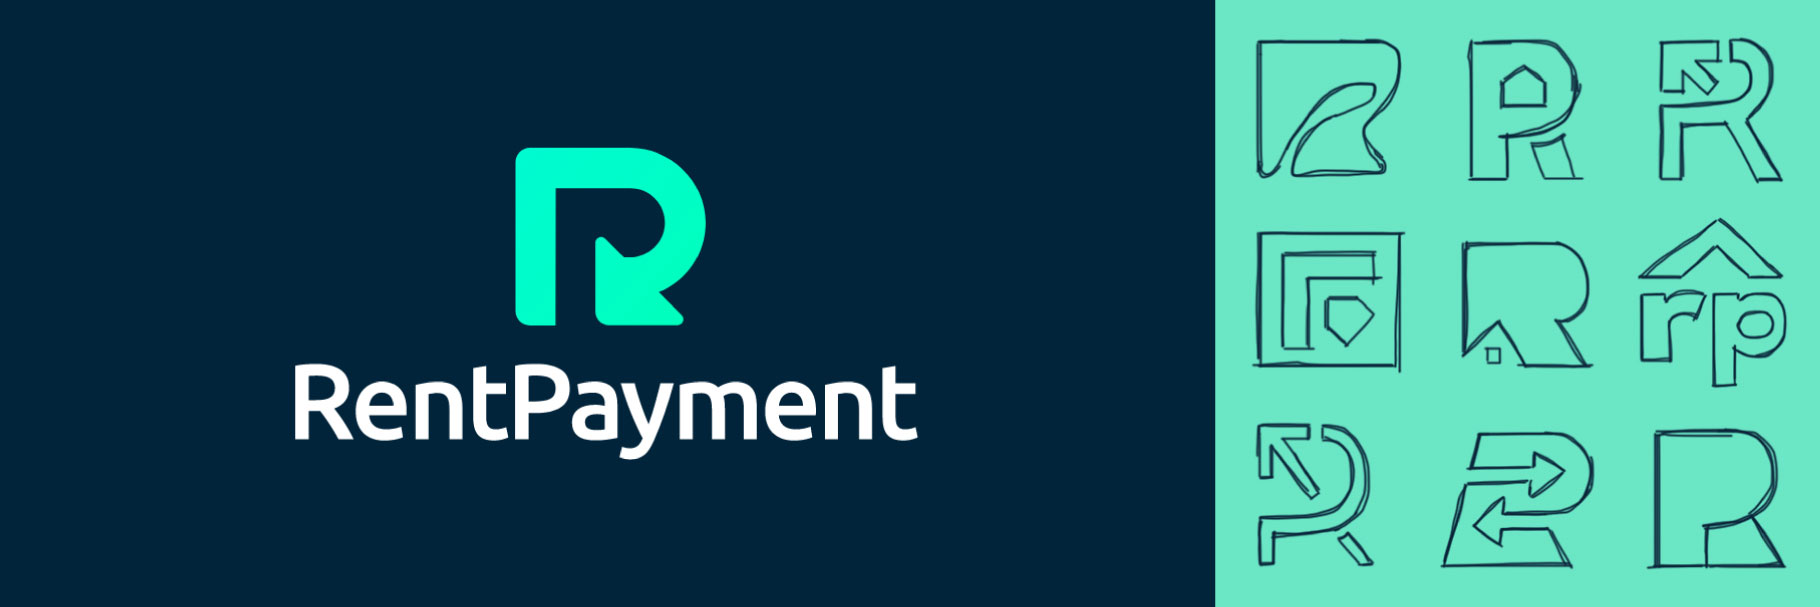 RentPayment official logo and in-process logo sketches